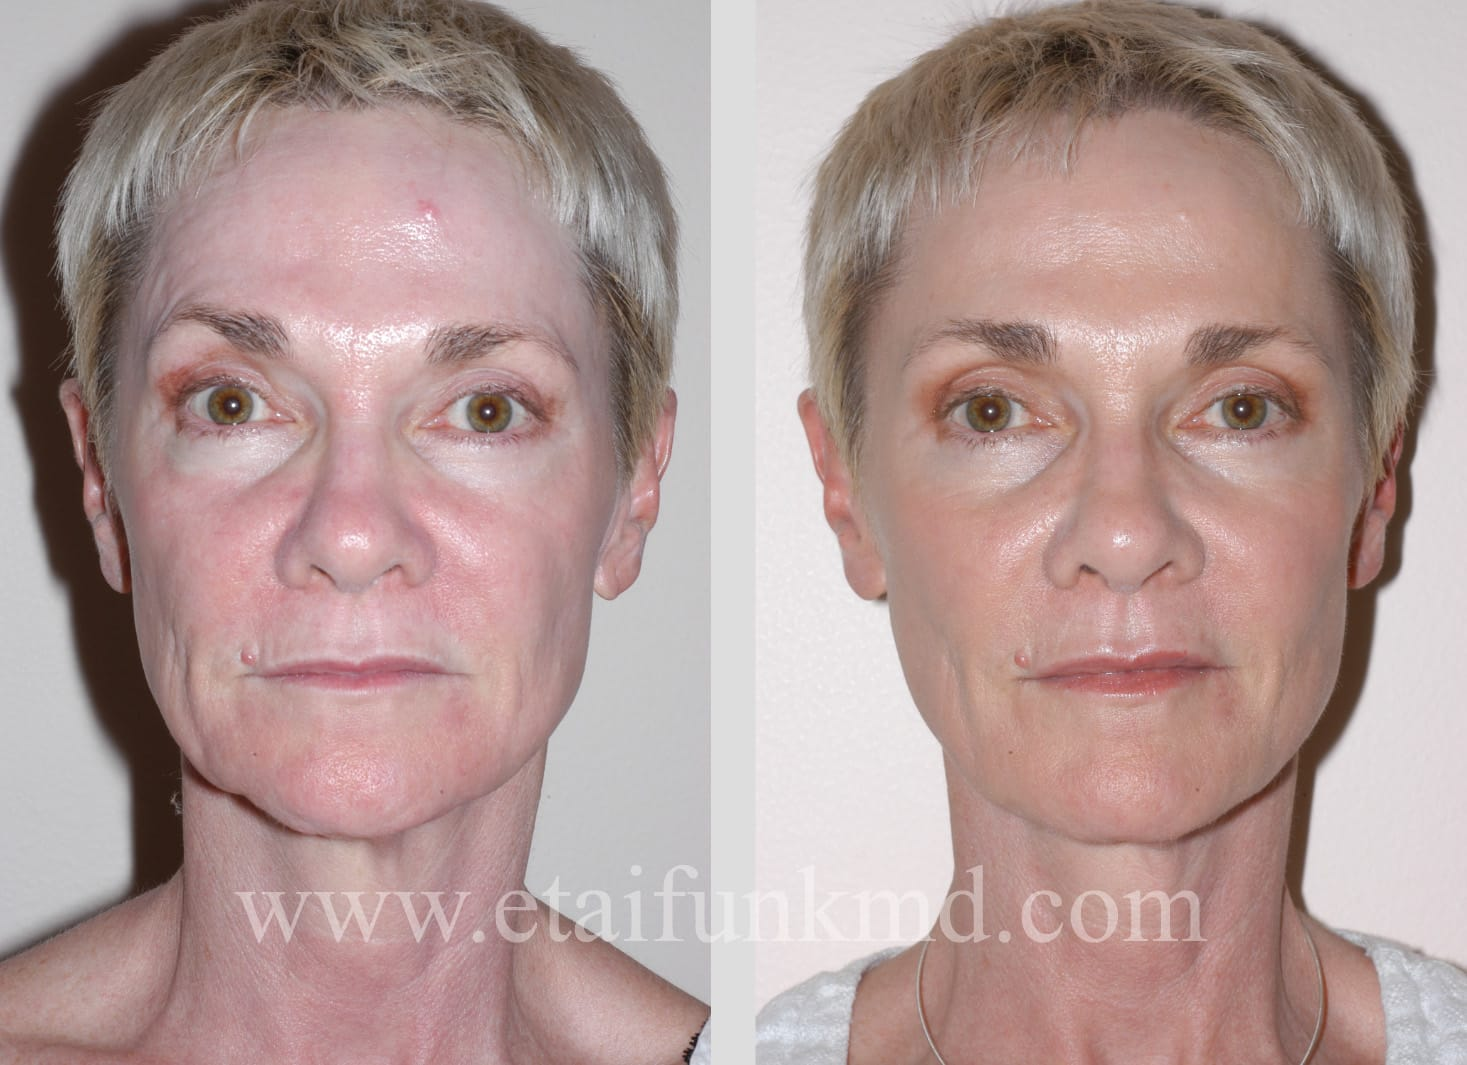 Facial Fillers Houston: Sculptra, Restylane, Perlane